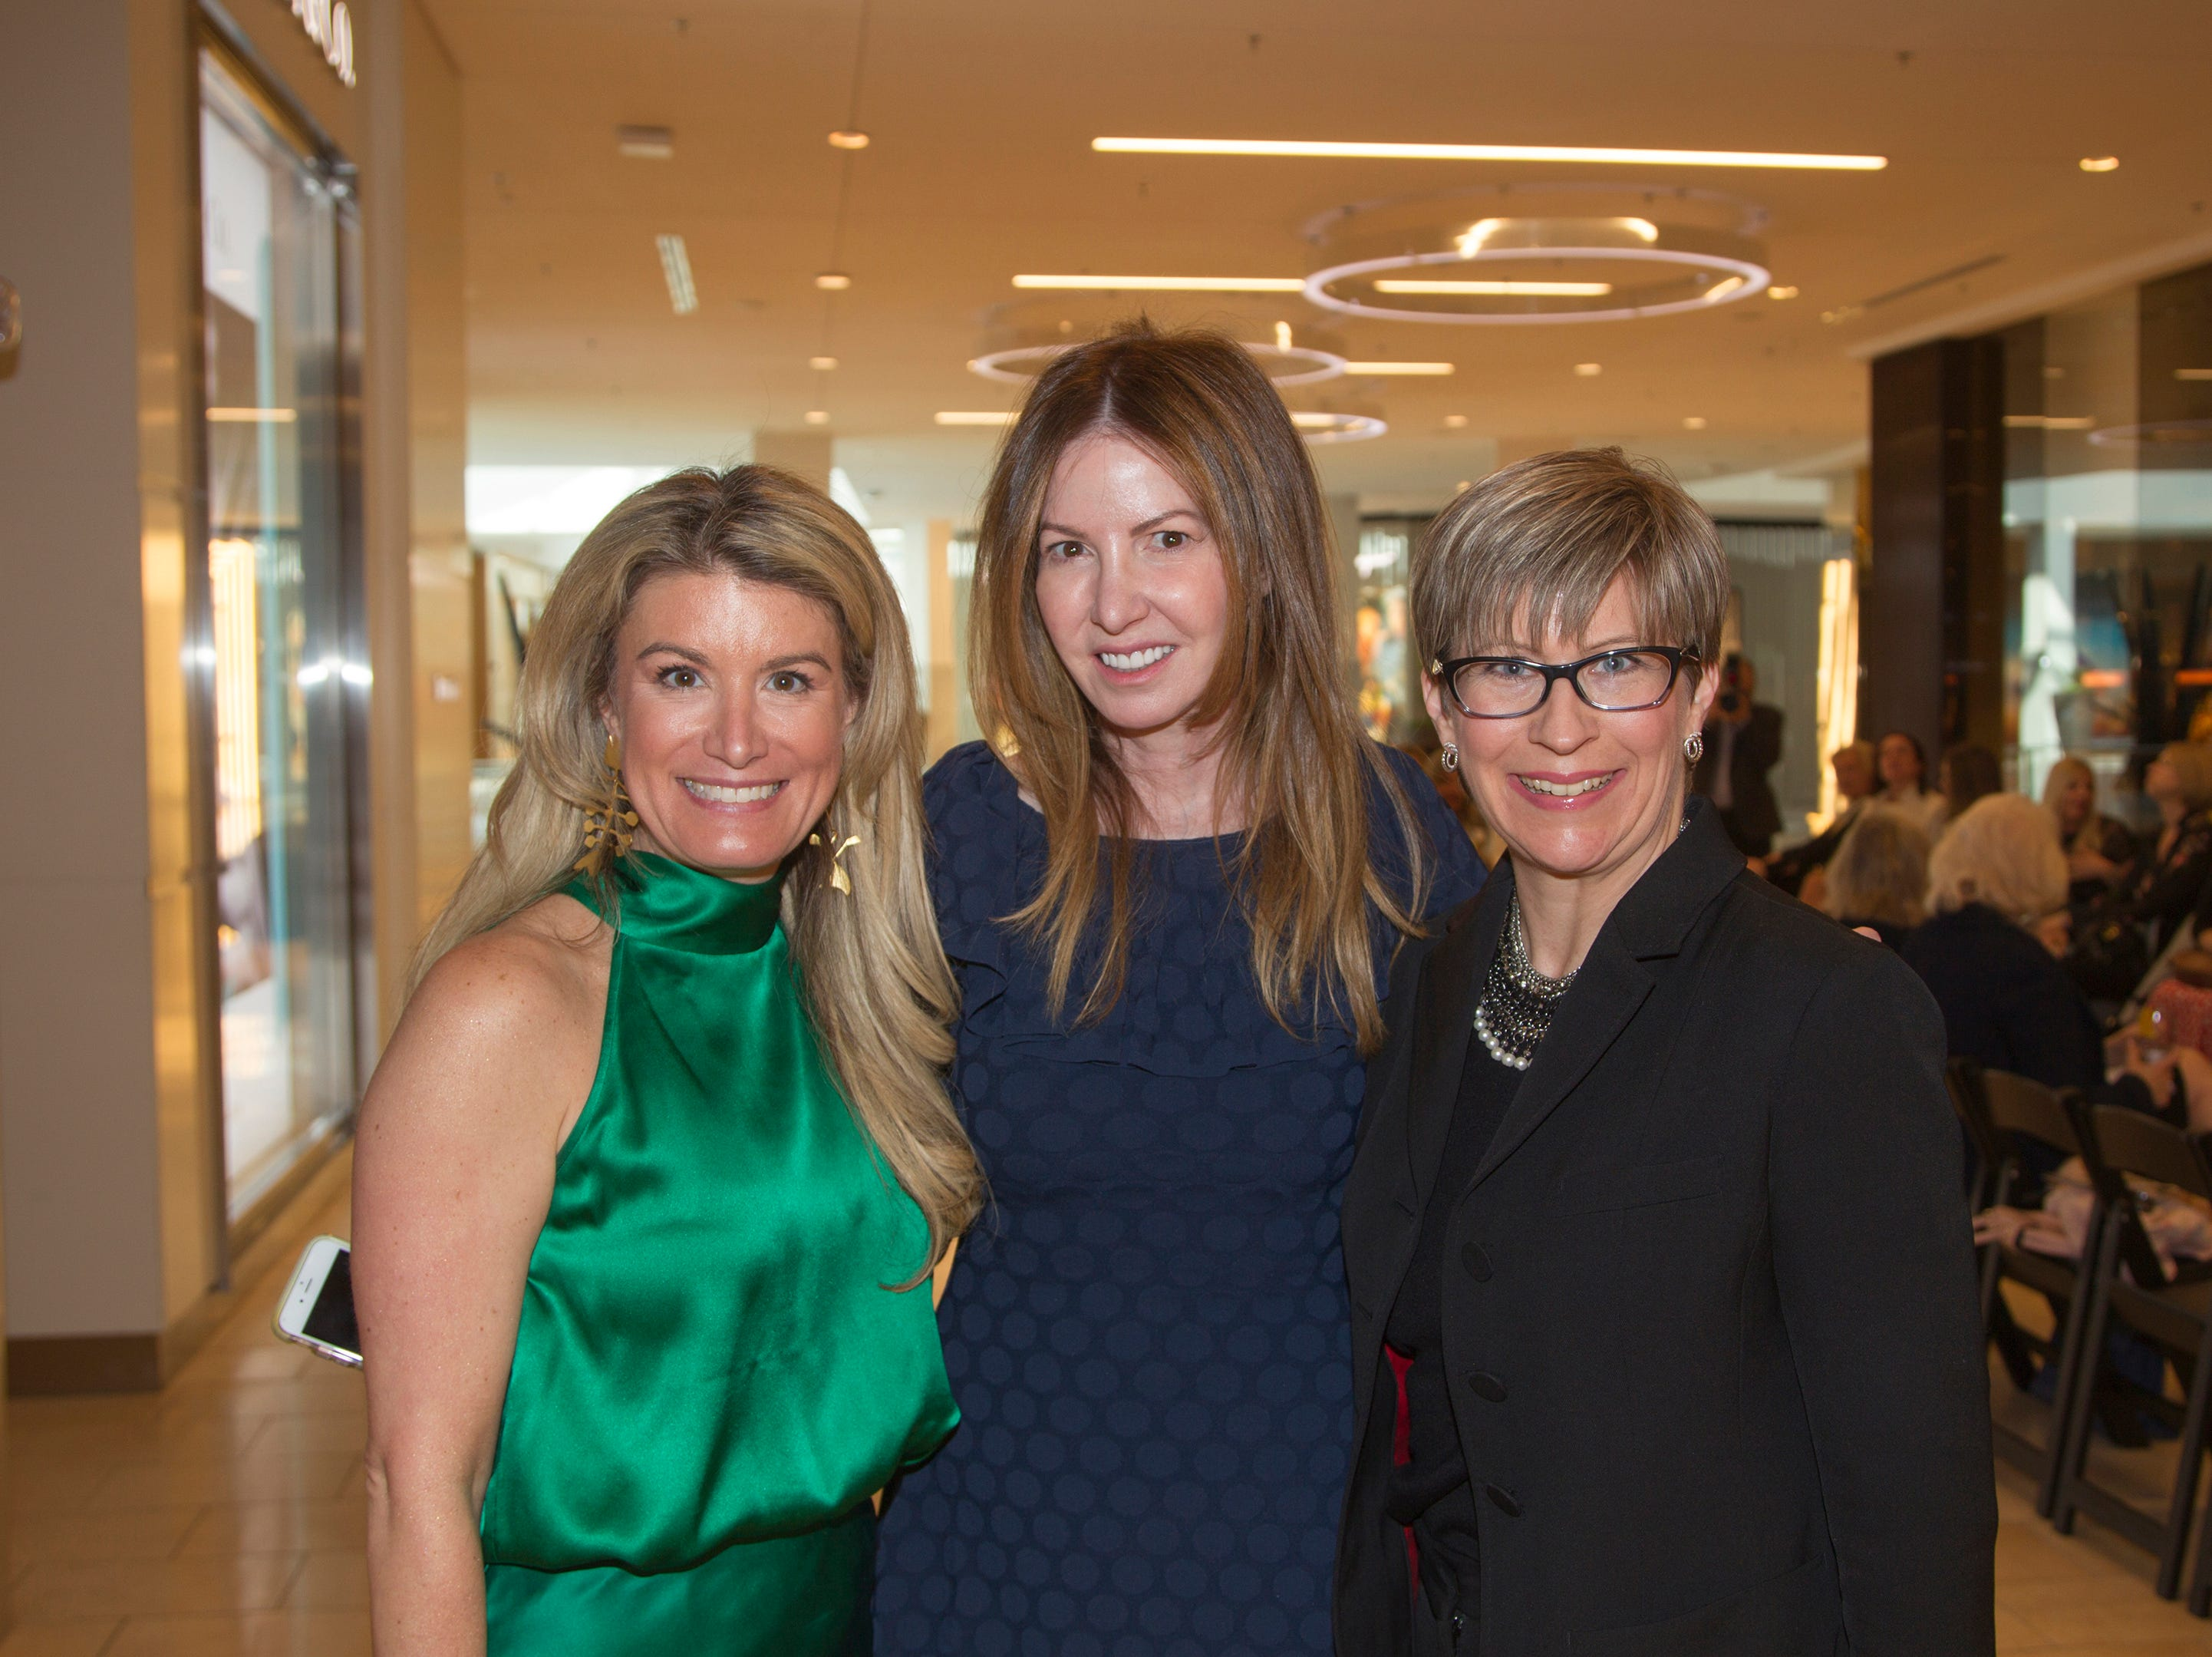 Candace Kristin, Paula Hian, Brooke Lawson. Westfield Garden State Plaza held its Meet the Artist & Trend Show benefitting The Valley Hospital Auxillary Saddle River Branch. 04/03/2019